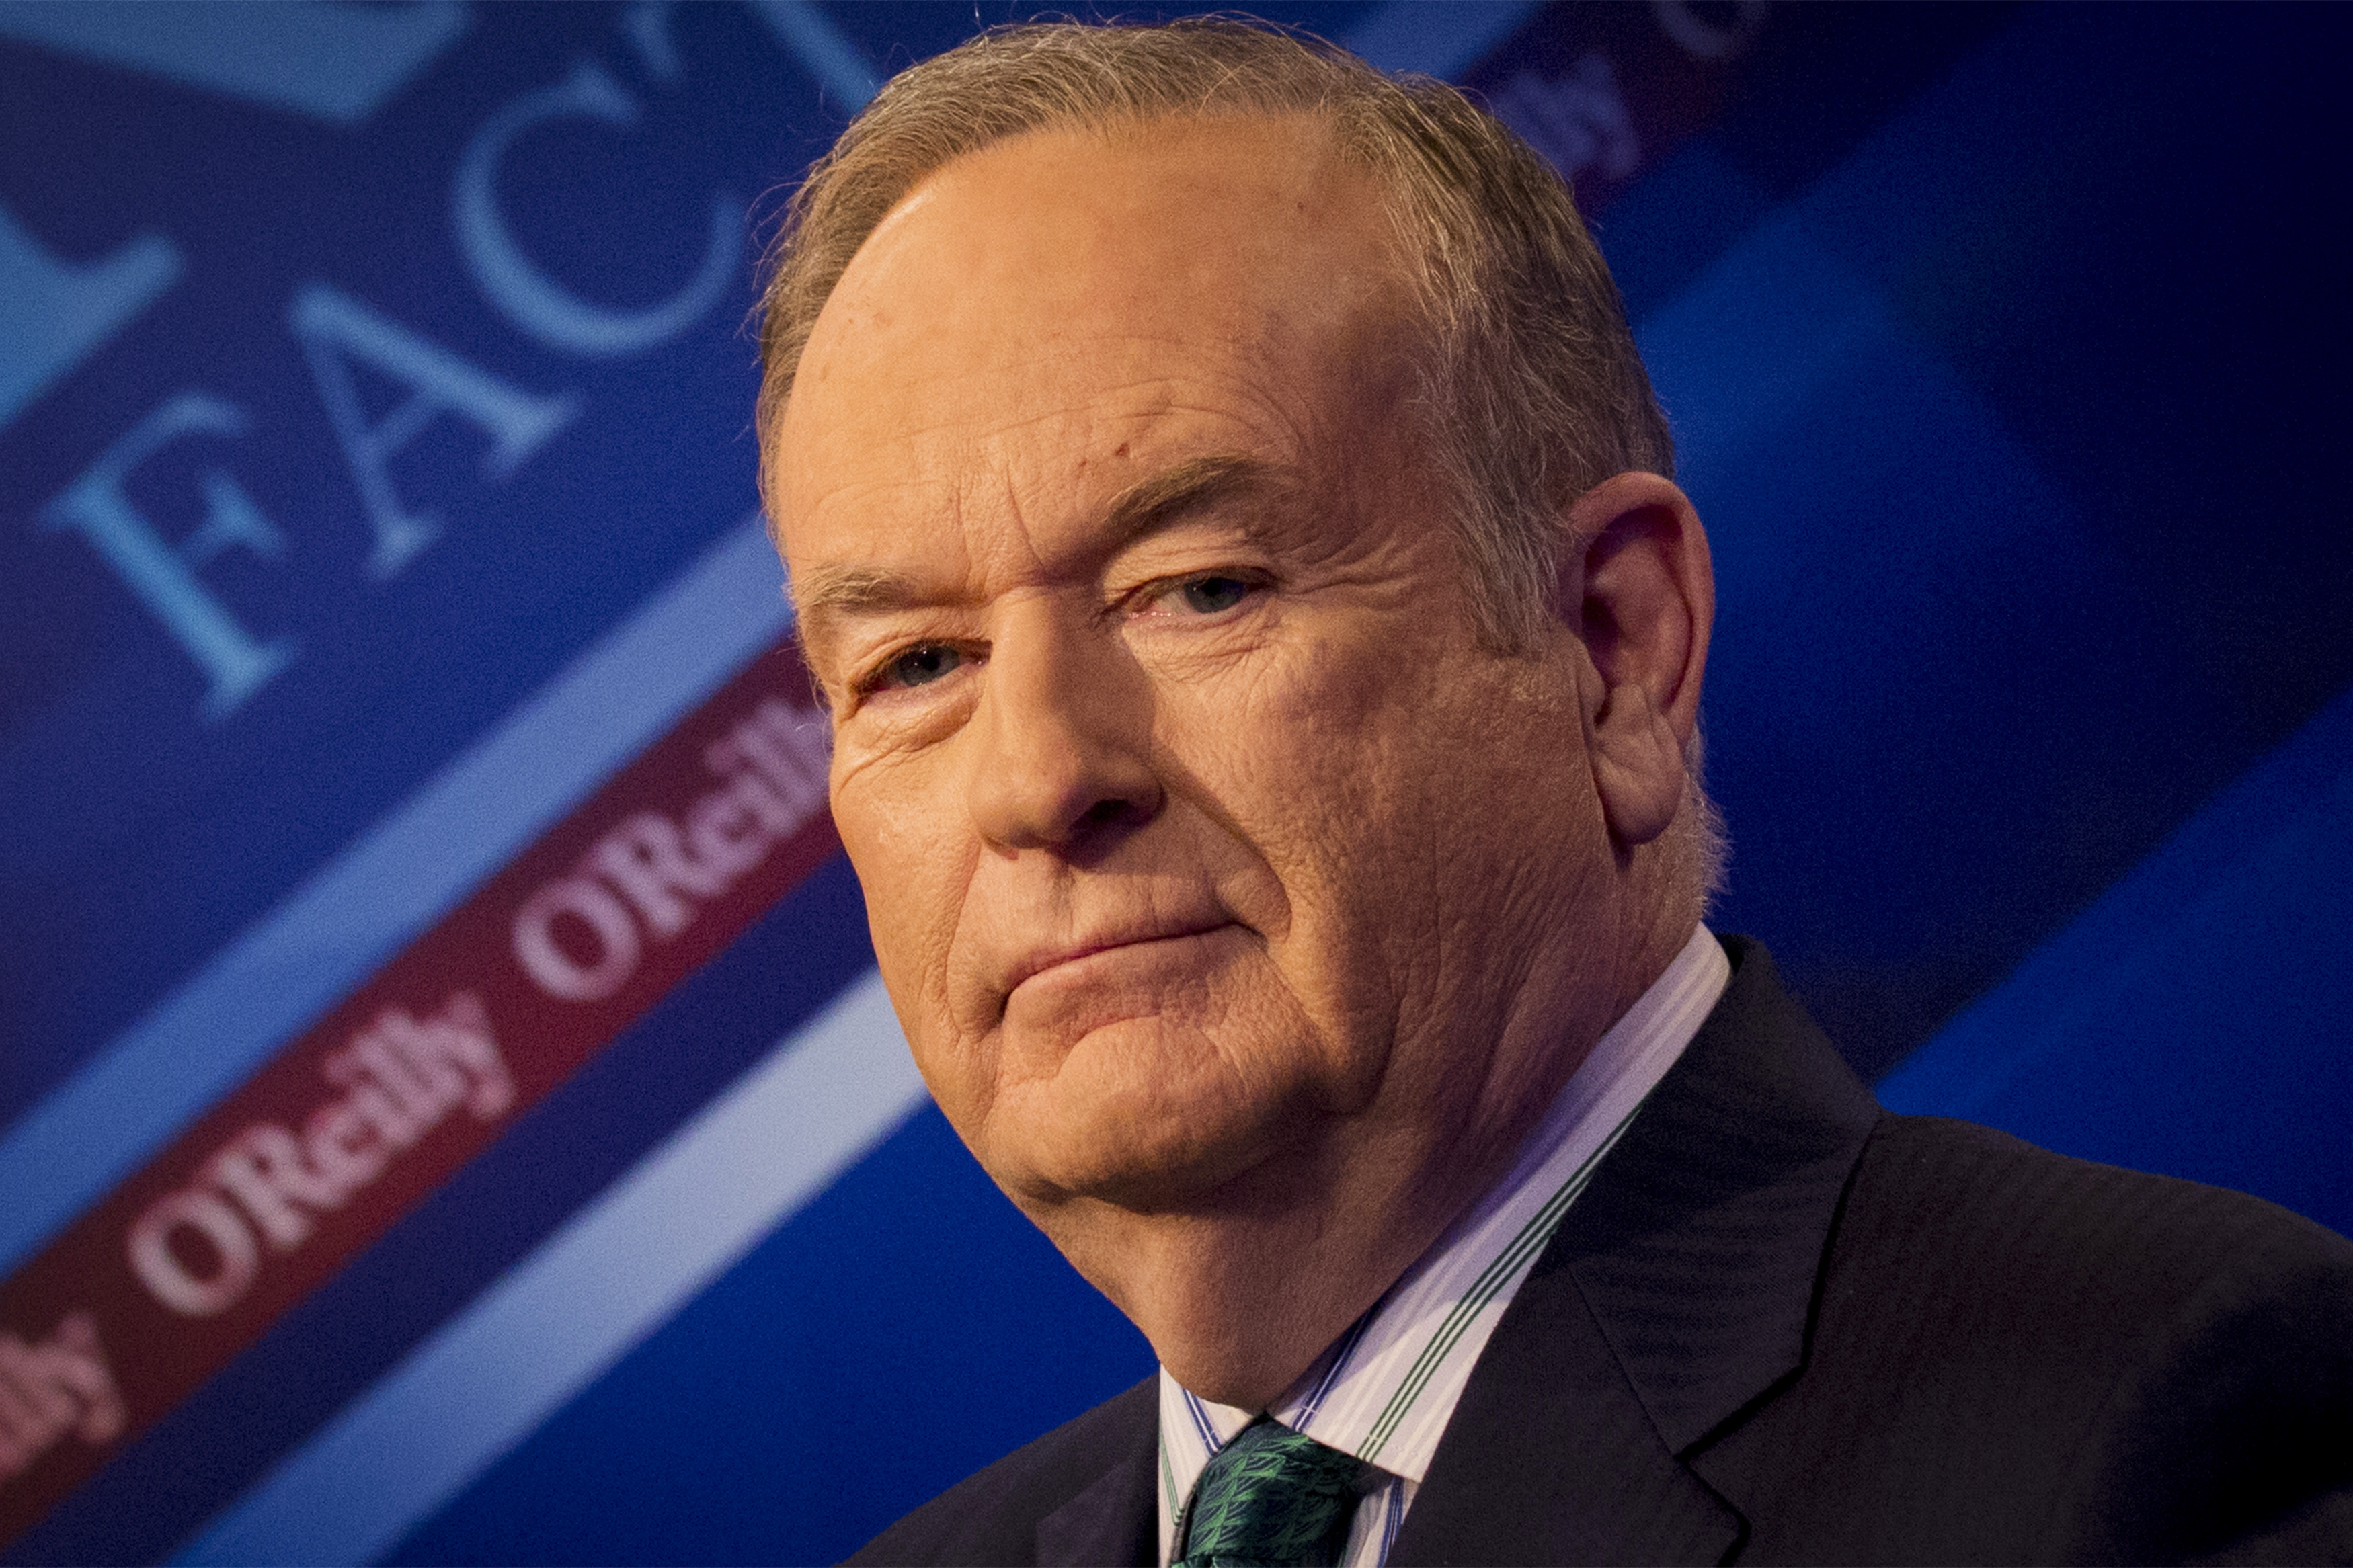 Fox News ends relationship with Bill O'Reilly